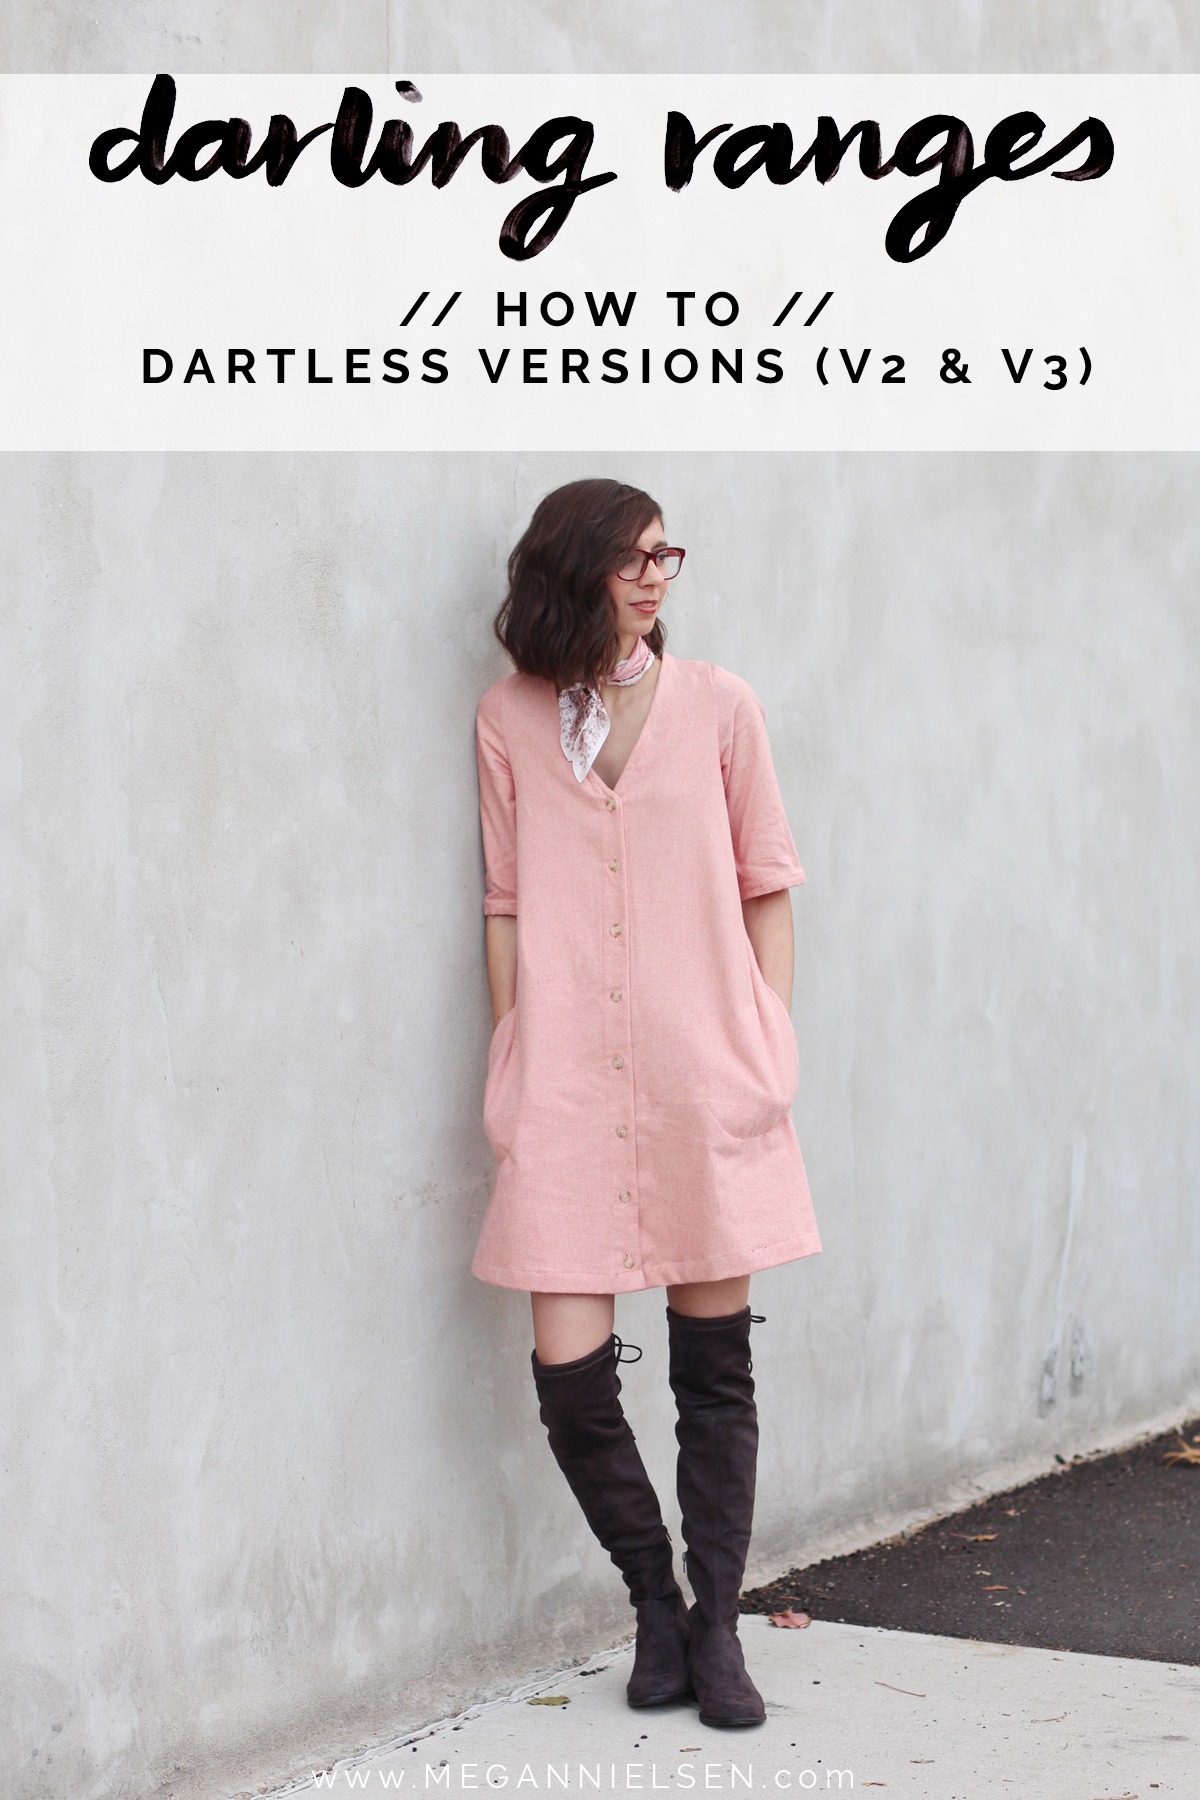 how to make the dartless versions of Darling Ranges pattern // tutorial on Megan Nielsen Design Diary